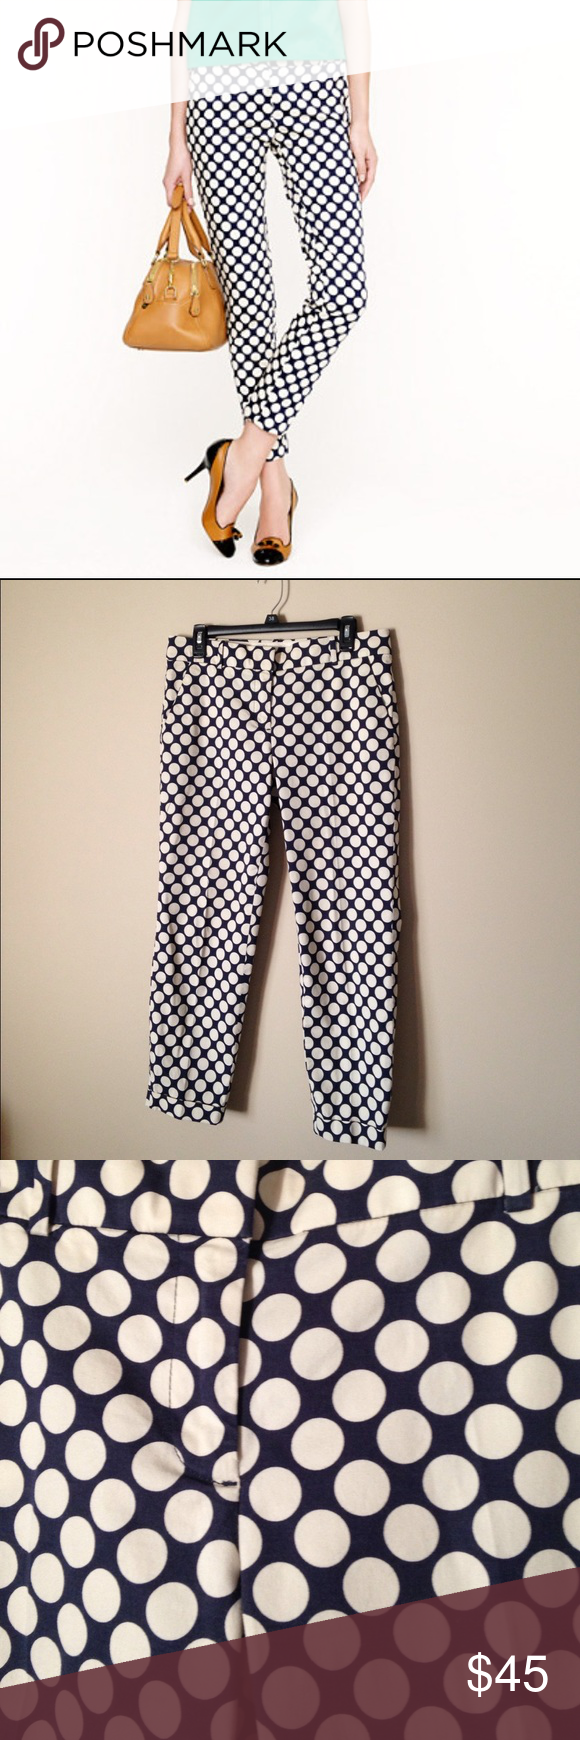 J Crew polka dot cafe capris 98% cotton, 2% spandex. Cream and navy colored, 4 pockets. So cute and in great condition! J. Crew Pants Ankle & Cropped